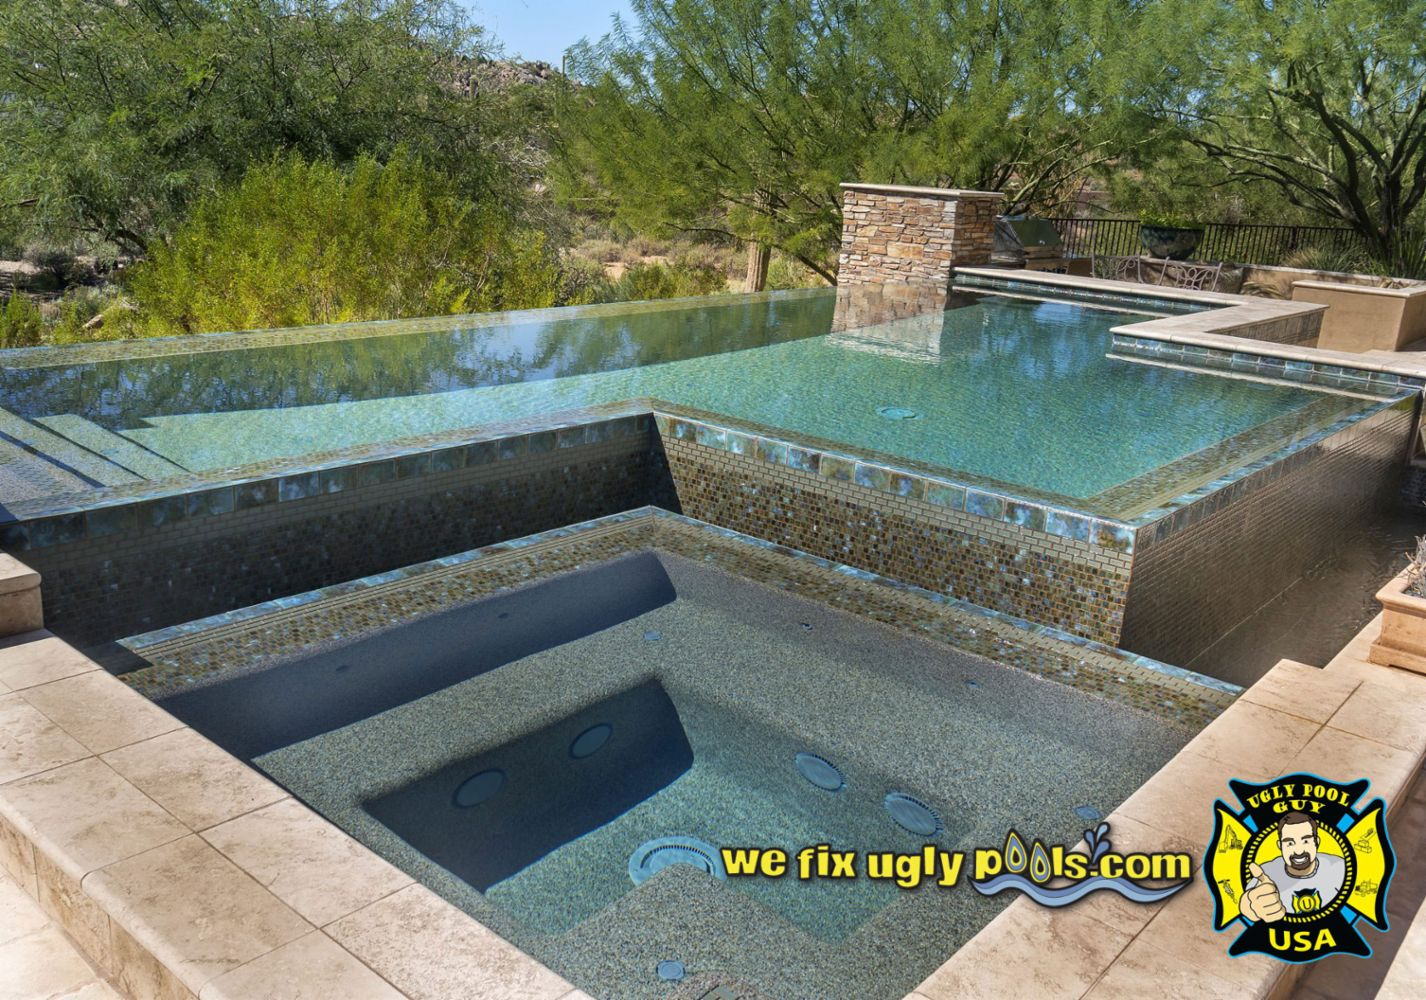 Pool remodeling and repair in peoria az we fix ugly pools for Pool durchmesser 4 50